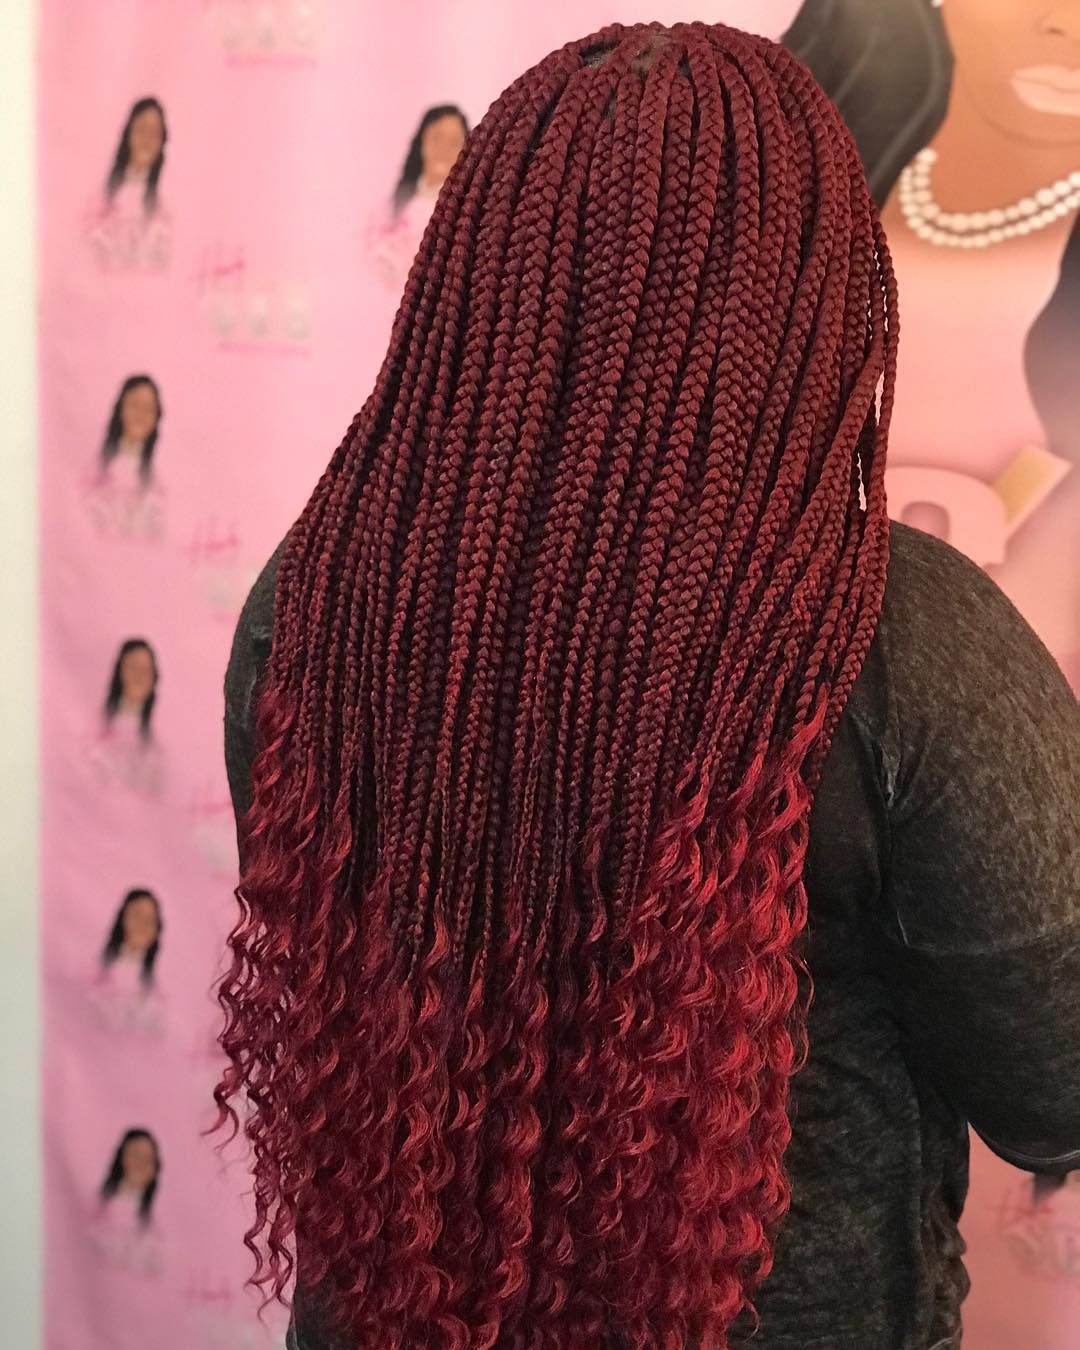 "BraidSlayer on Instagram: ""Goddess braids #boxbraids #goddessbraids #goddess #braids #scbraider #braider #burgundy #tucked"" #goddessbraids"